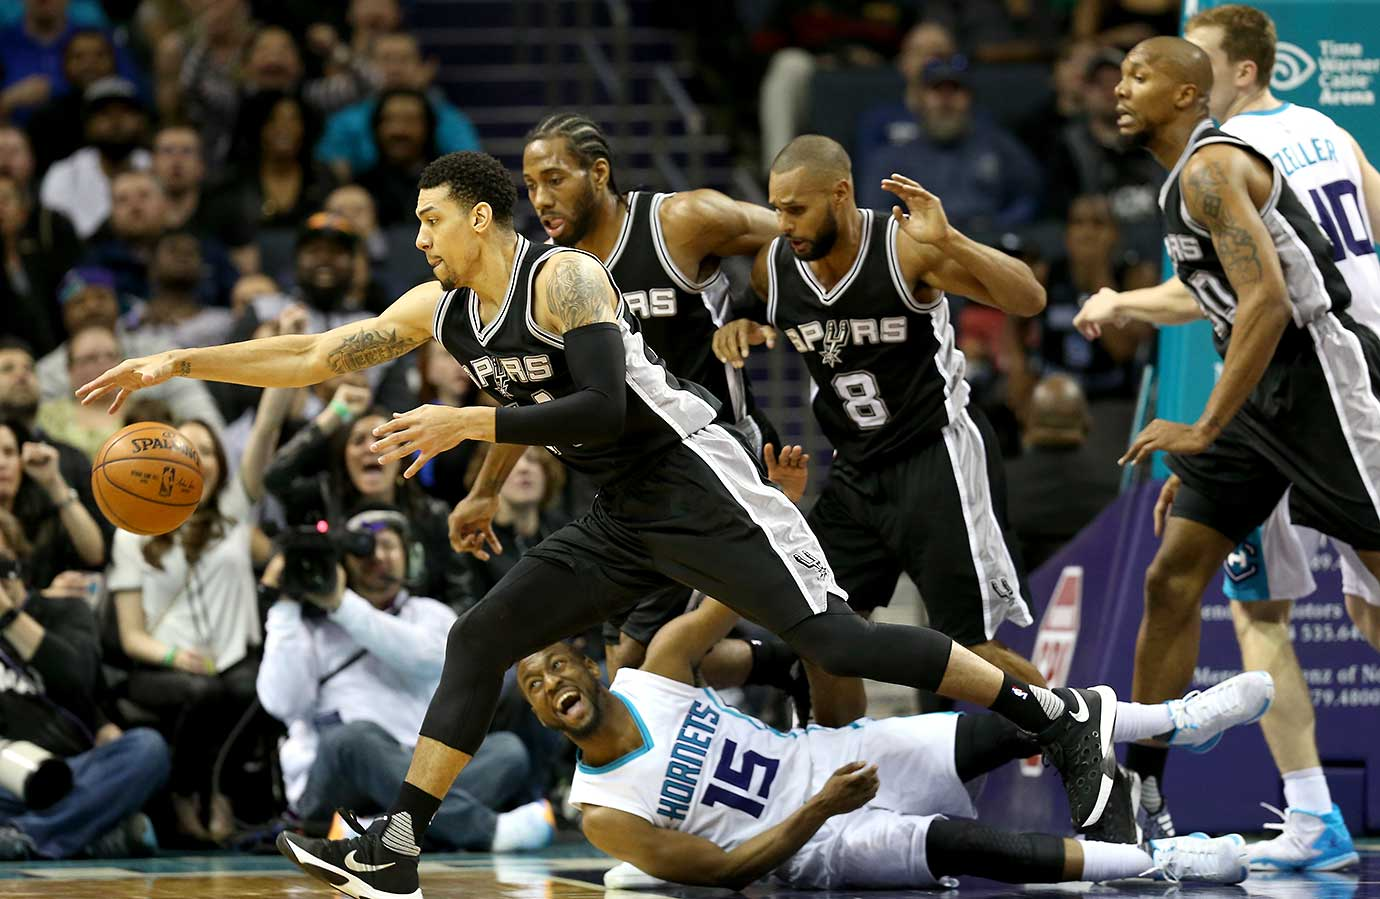 Kemba Walker of the Charlotte Hornets watches as Danny Green of the San Antonio Spurs goes after a loose ball.